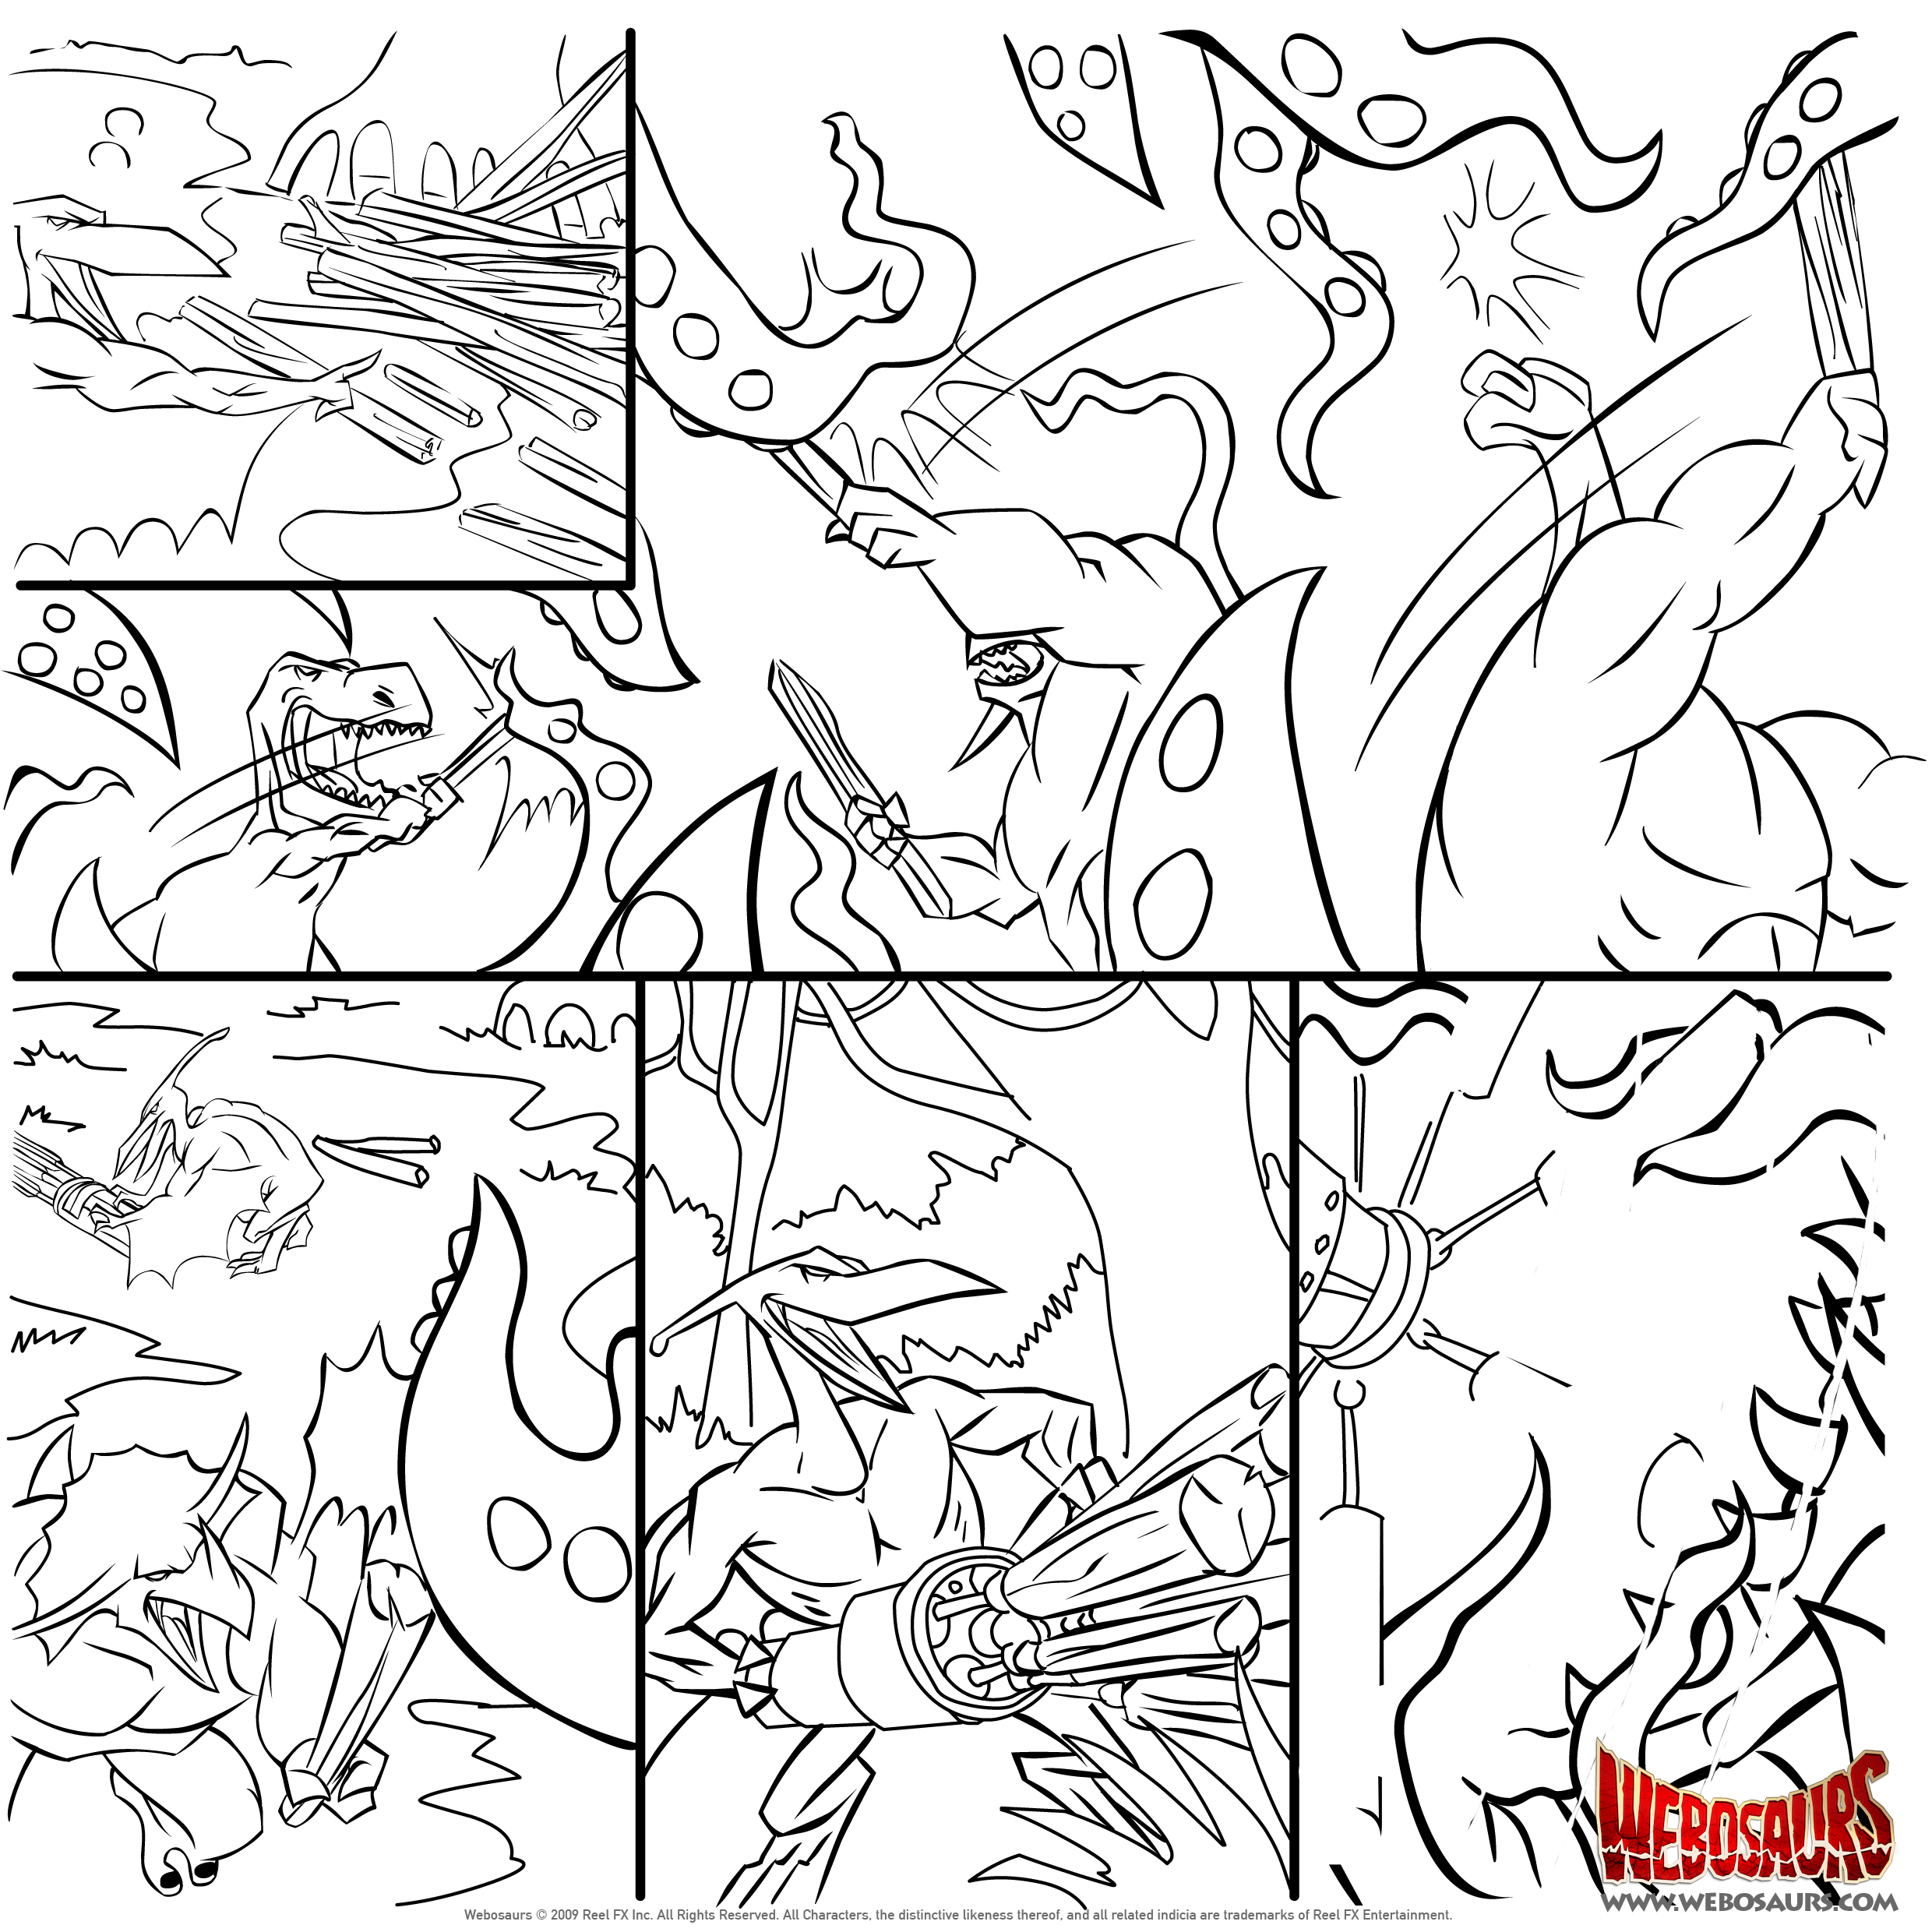 Annabeth Percy Jackson Pages Coloring Pages